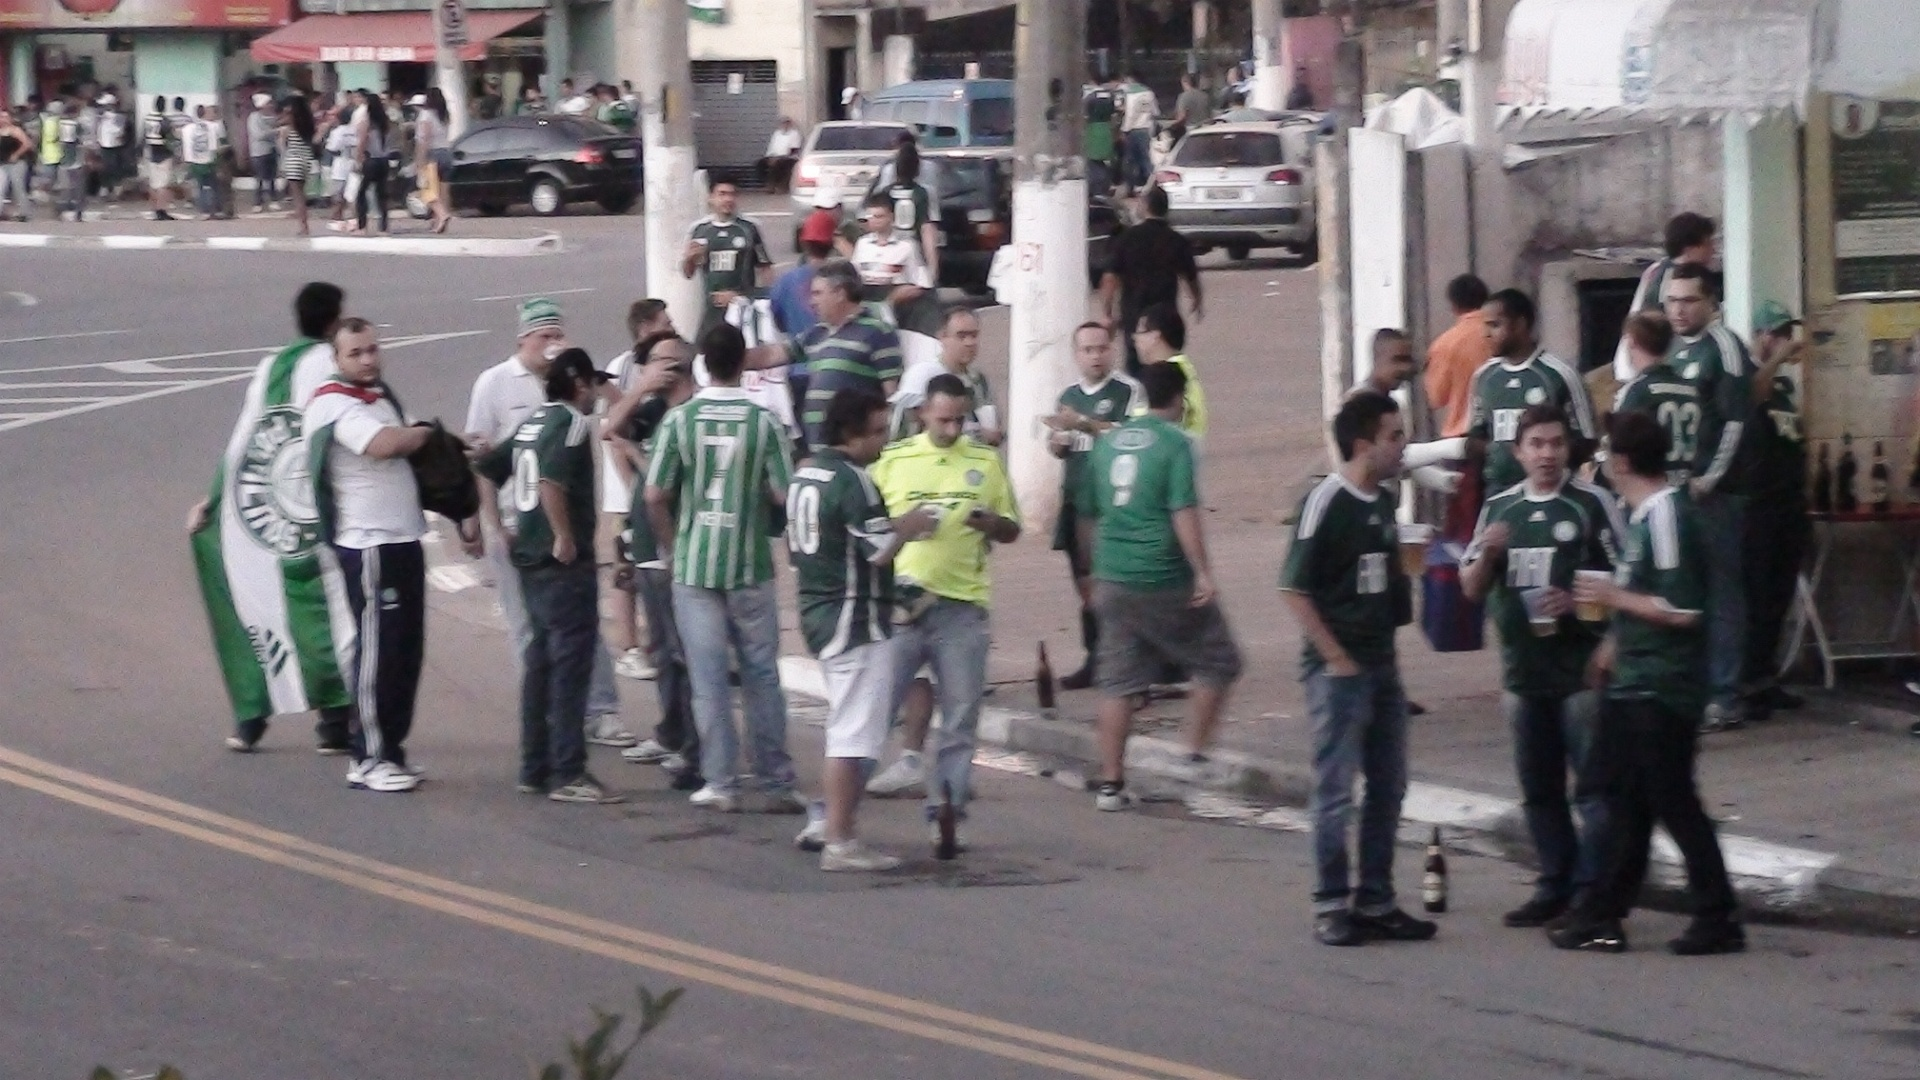 Vrios torcedores do Palmeiras j circulam pelos arredores da Arena Barueri horas antes da partida contra o Coritiba